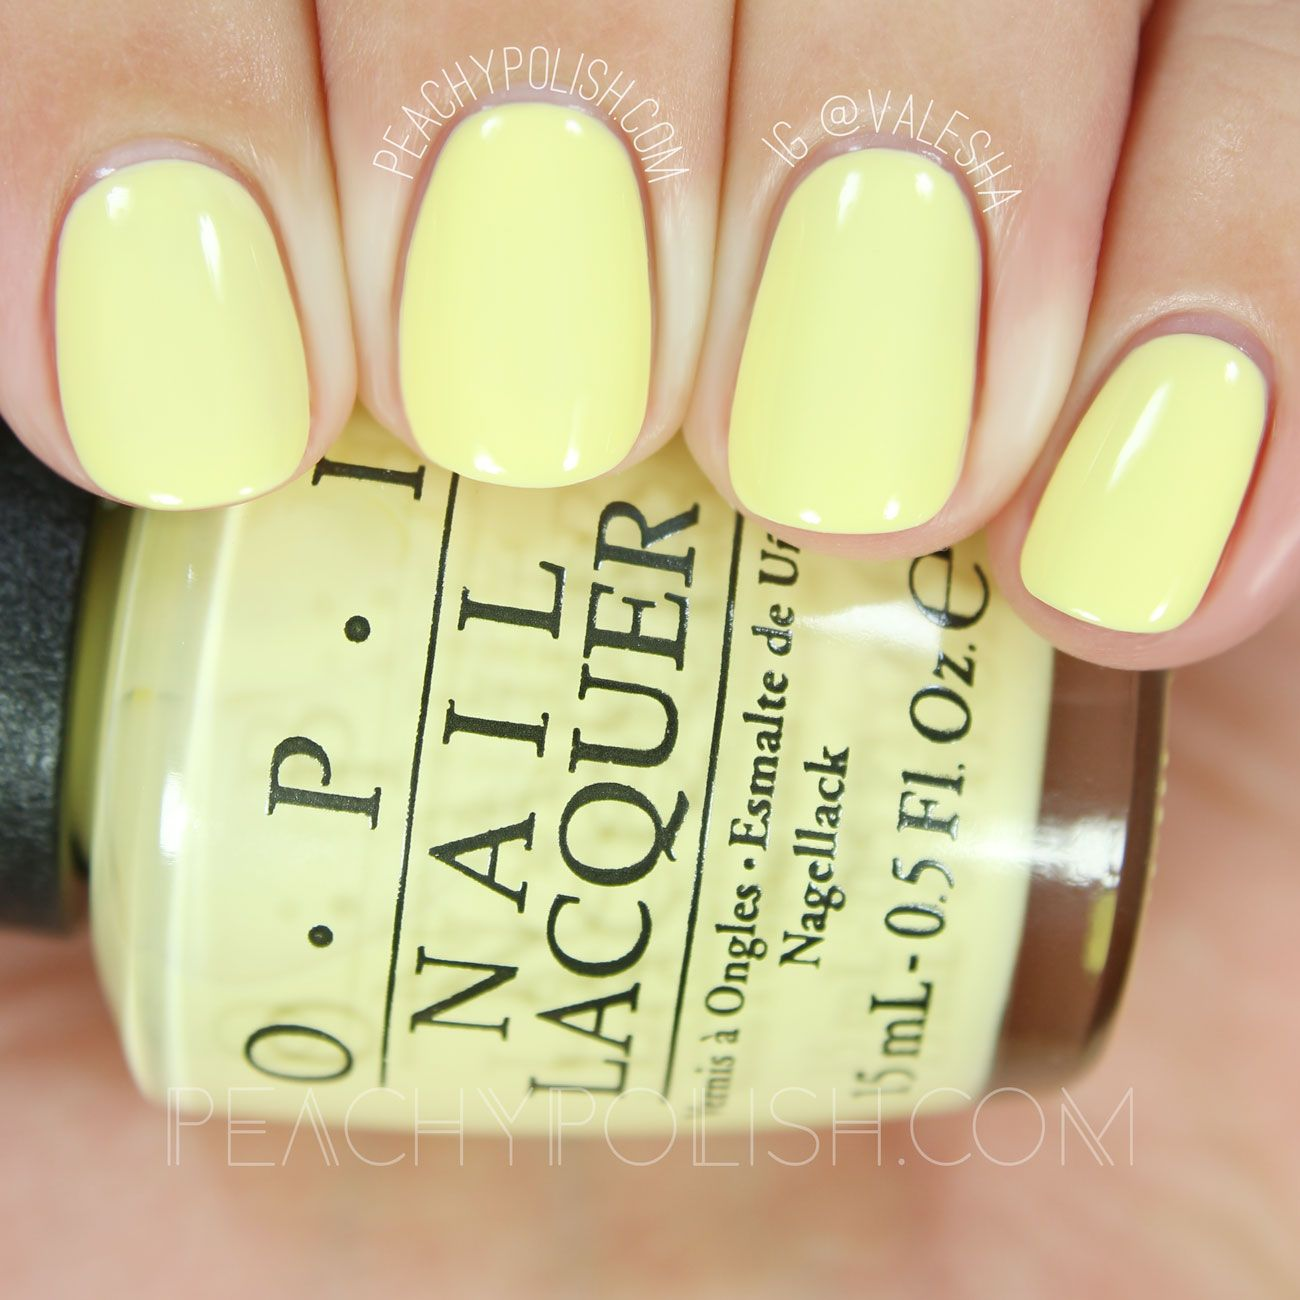 OPI: Retro Summer 2016 Collection Swatches & Review – Peachy Polish